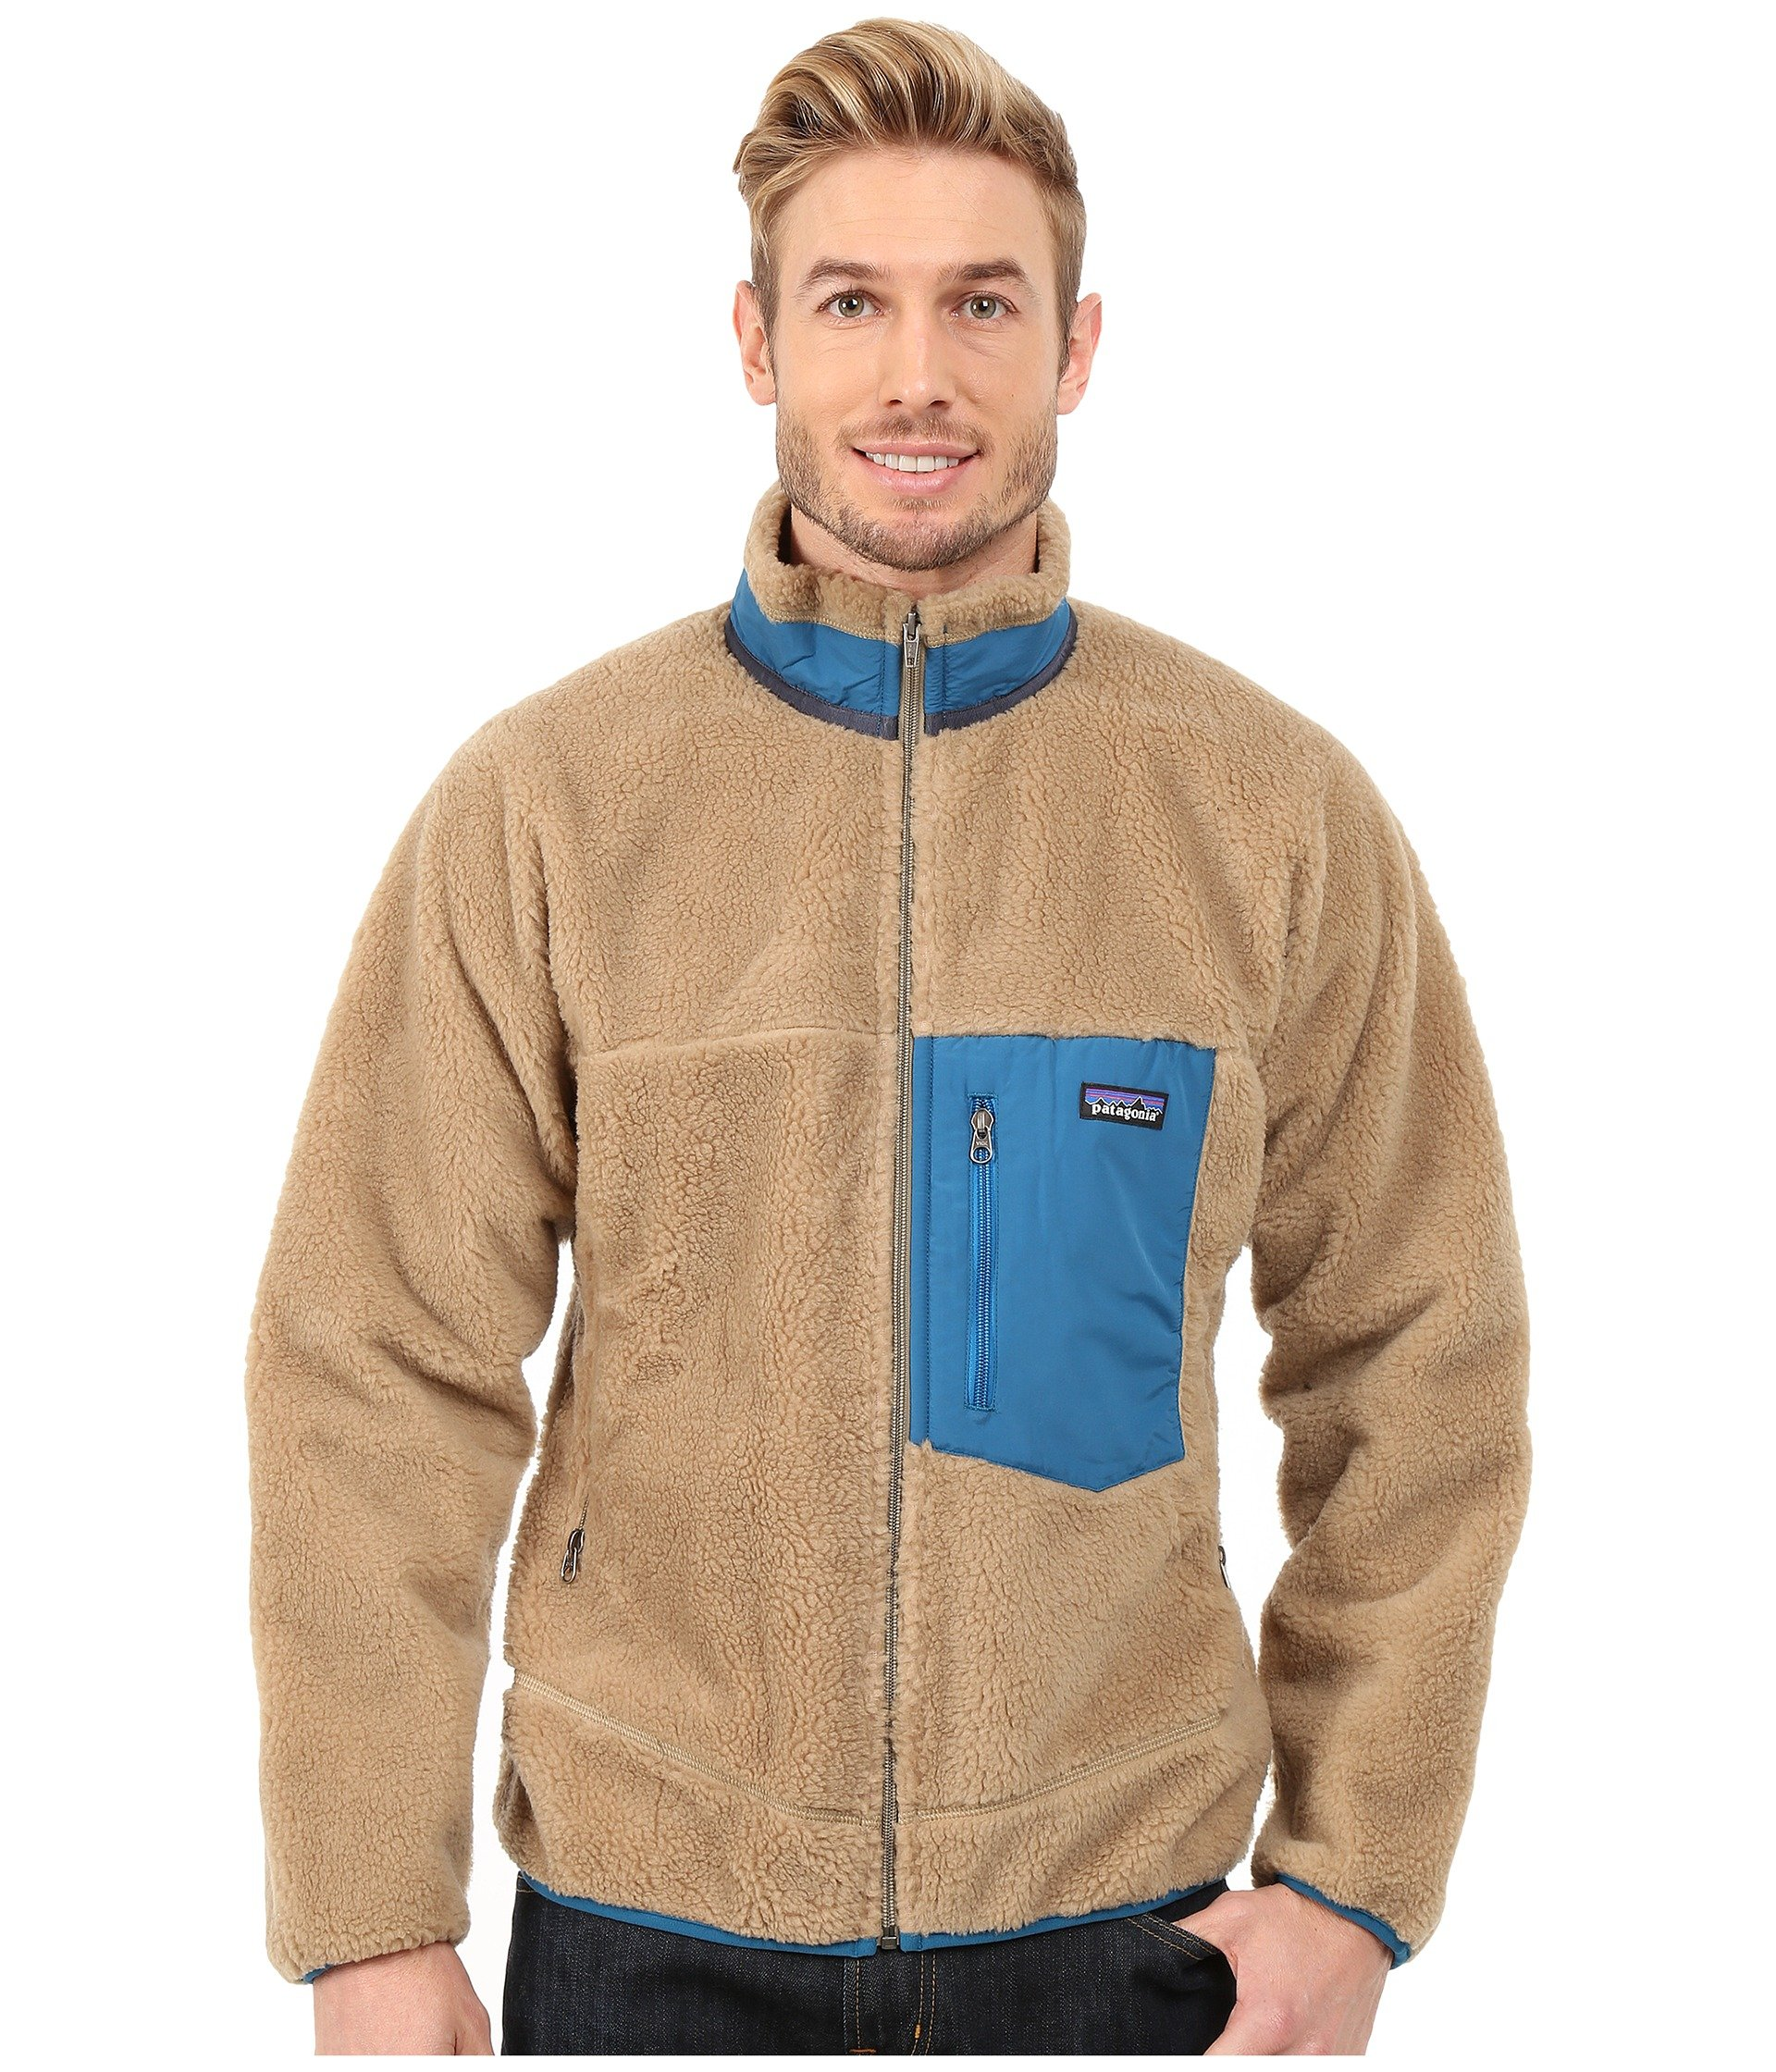 Patagonia Classic Retro-x Jacket In Natural For Men